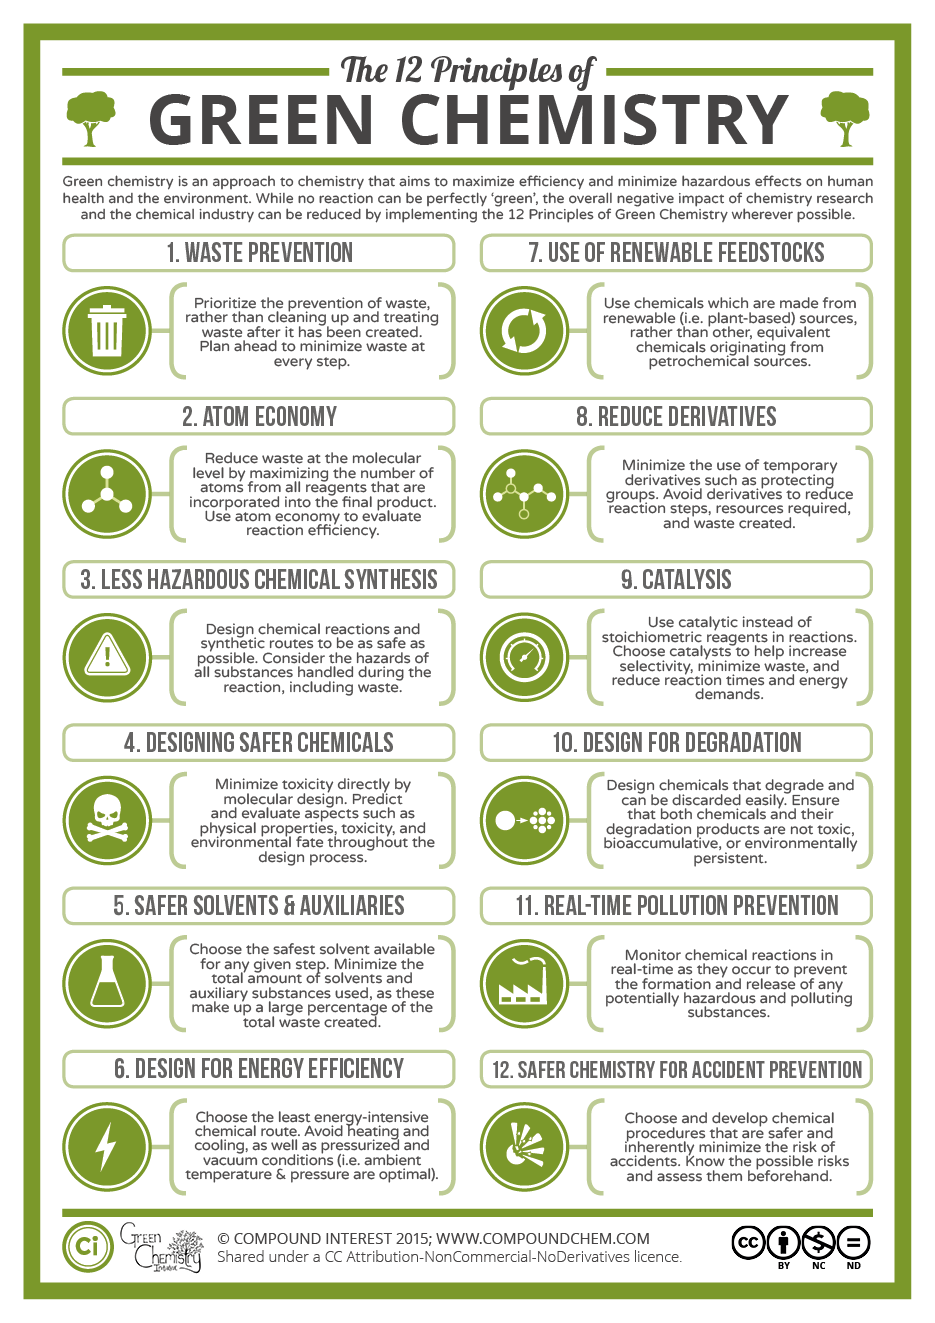 The-12-Principles-of-Green-Chemistry.png